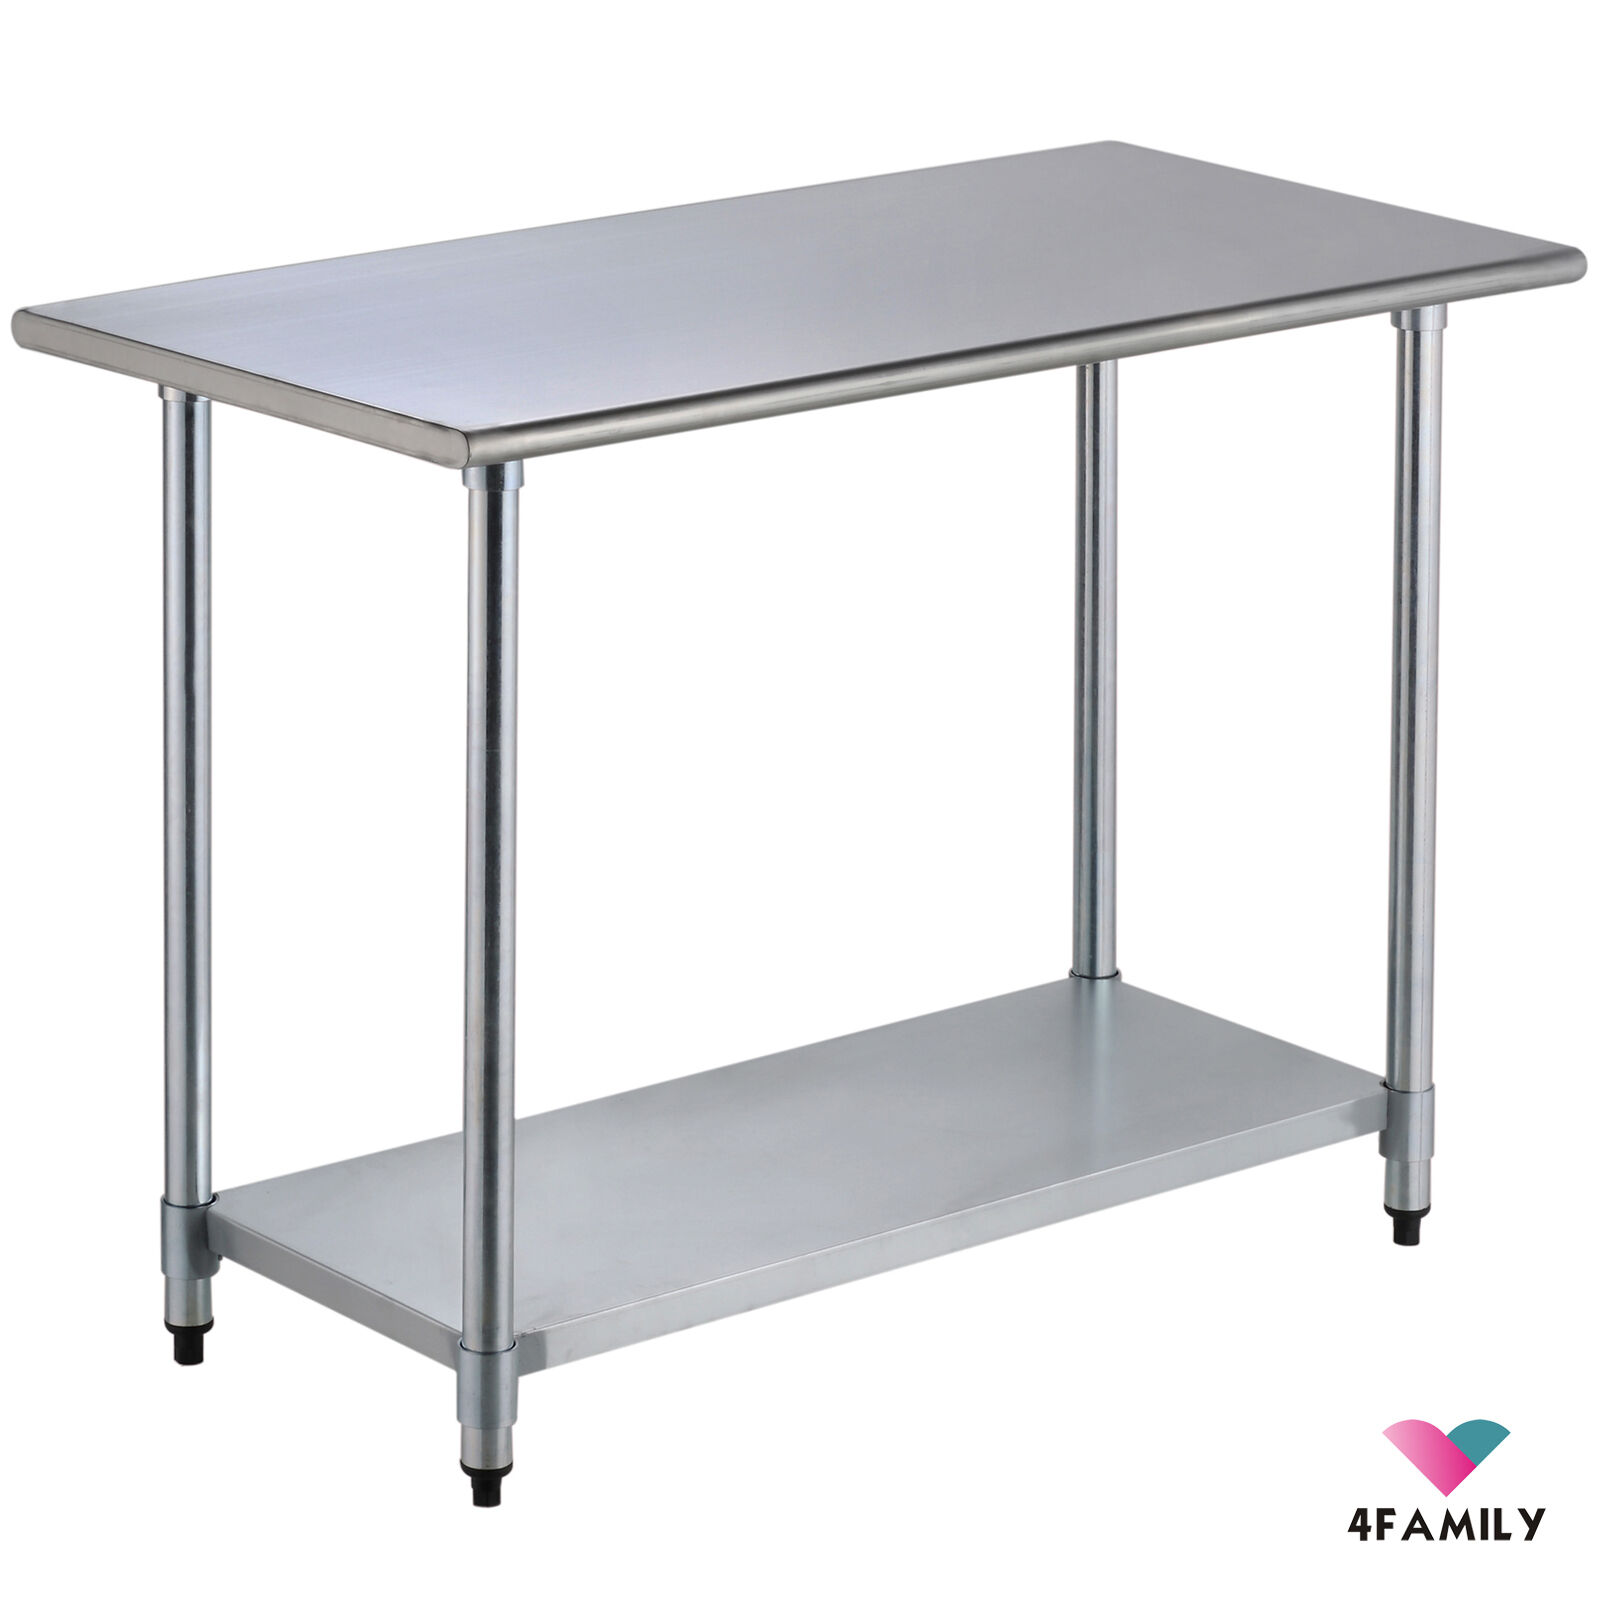 """Kitchen Table With Food: 24"""" X 48"""" Commercial Work Food Prep Table Stainless Steel Kitchen Restaurant 699957576494"""